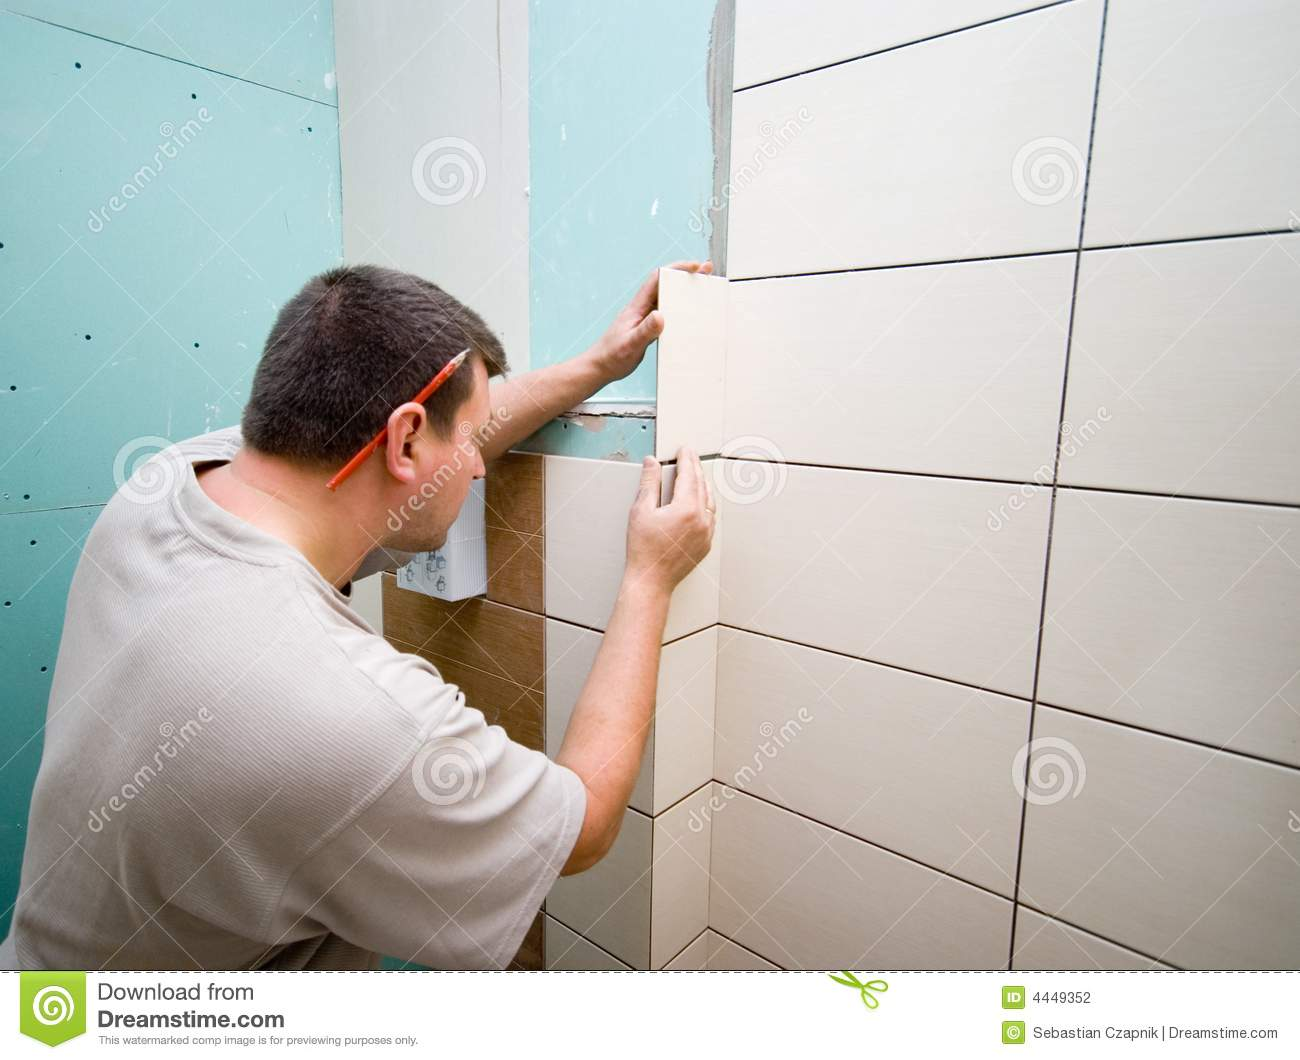 Bathroom Tiles Renovation bathroom tiles renovation stock photography - image: 4449352